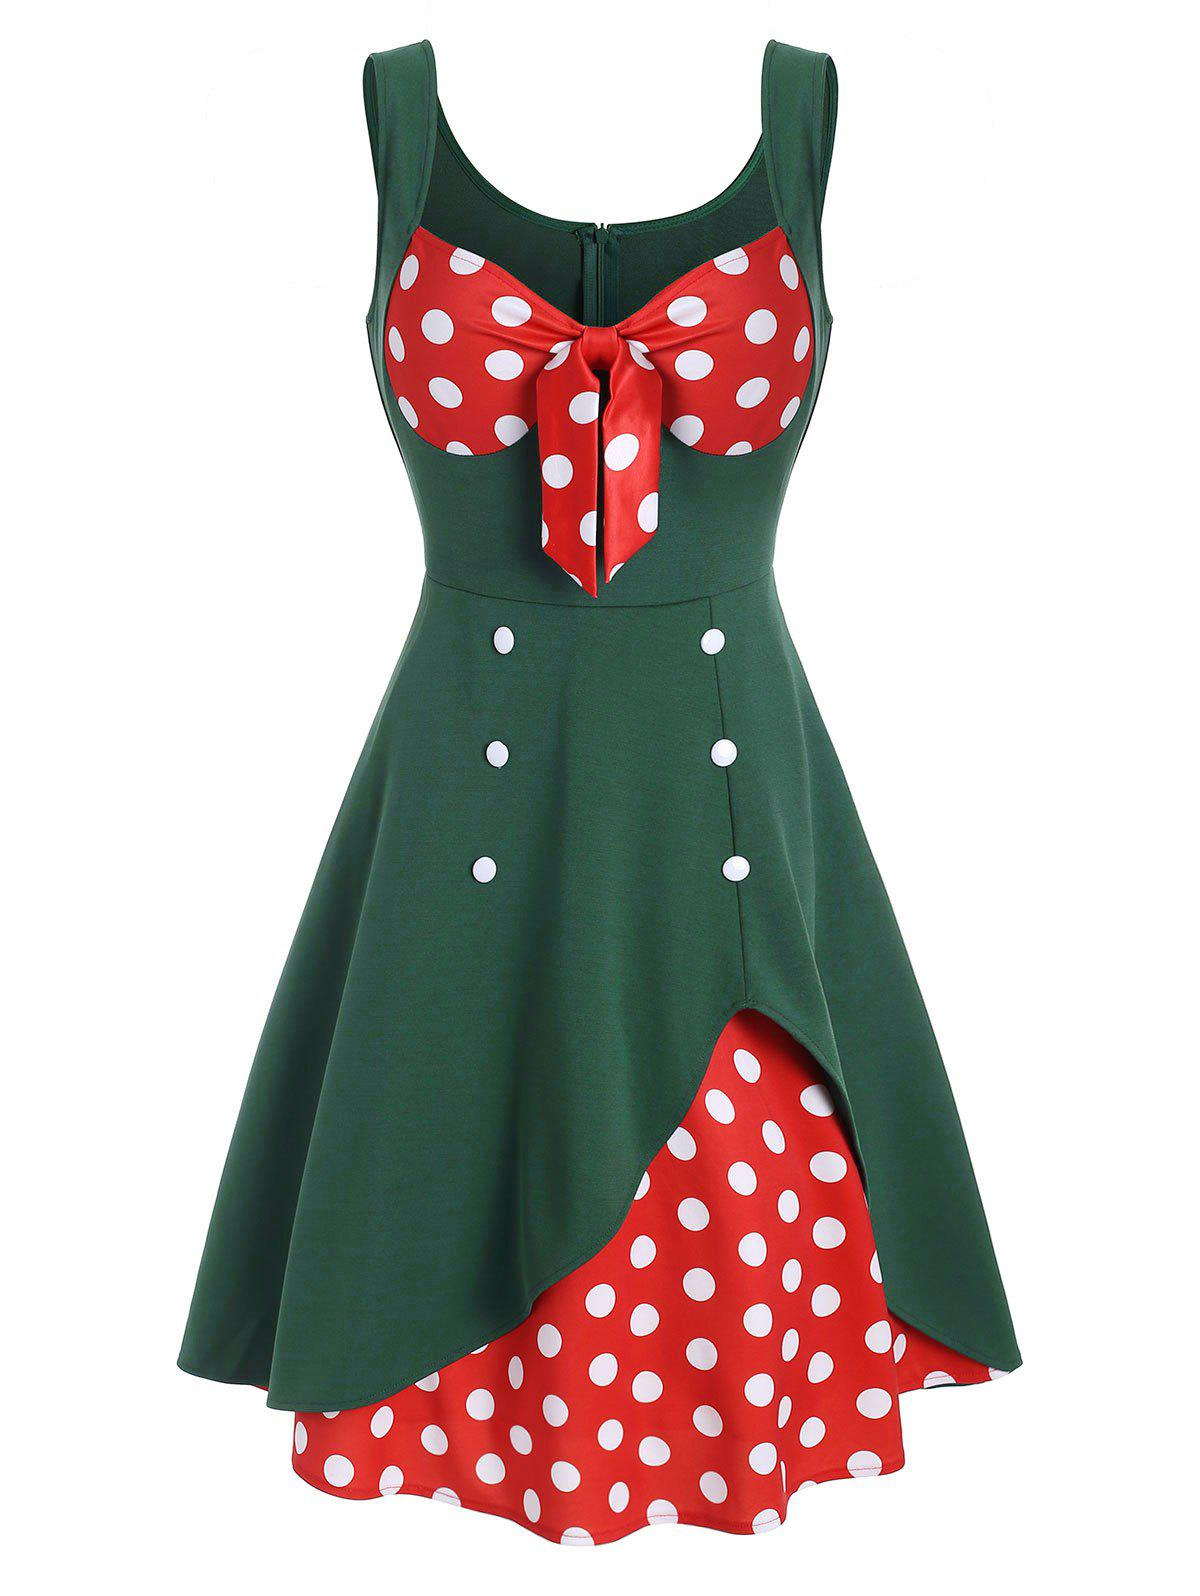 Polka Dot Bowknot Sweetheart Button Embellished Dress - MEDIUM FOREST GREEN M